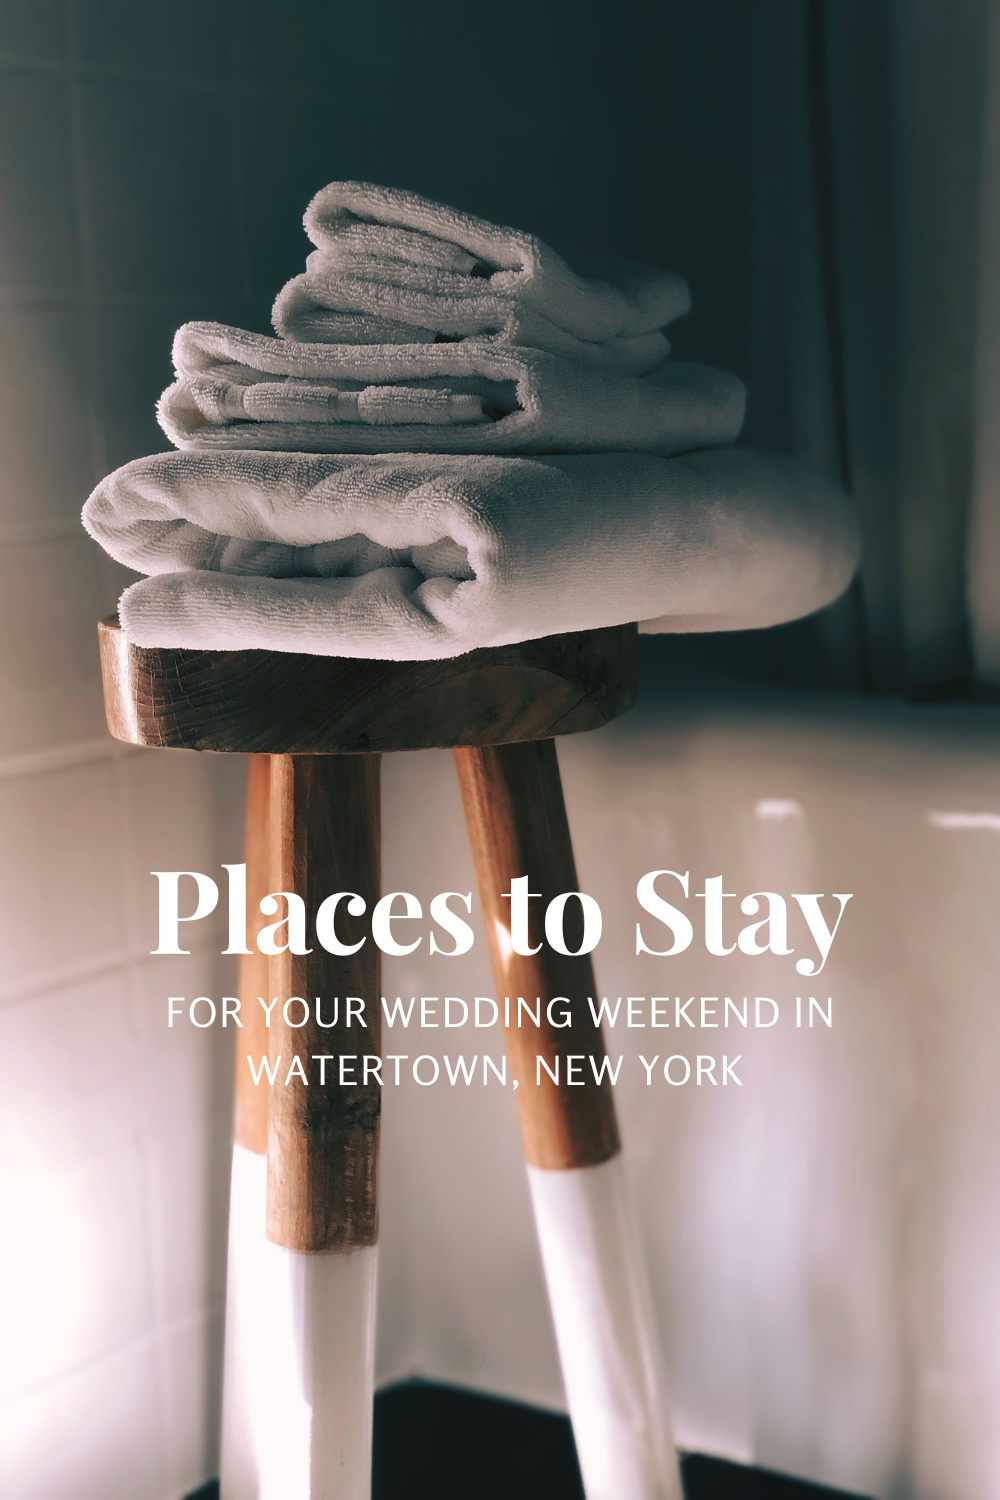 Places to Stay in Watertown, New York for your Wedding Weekend